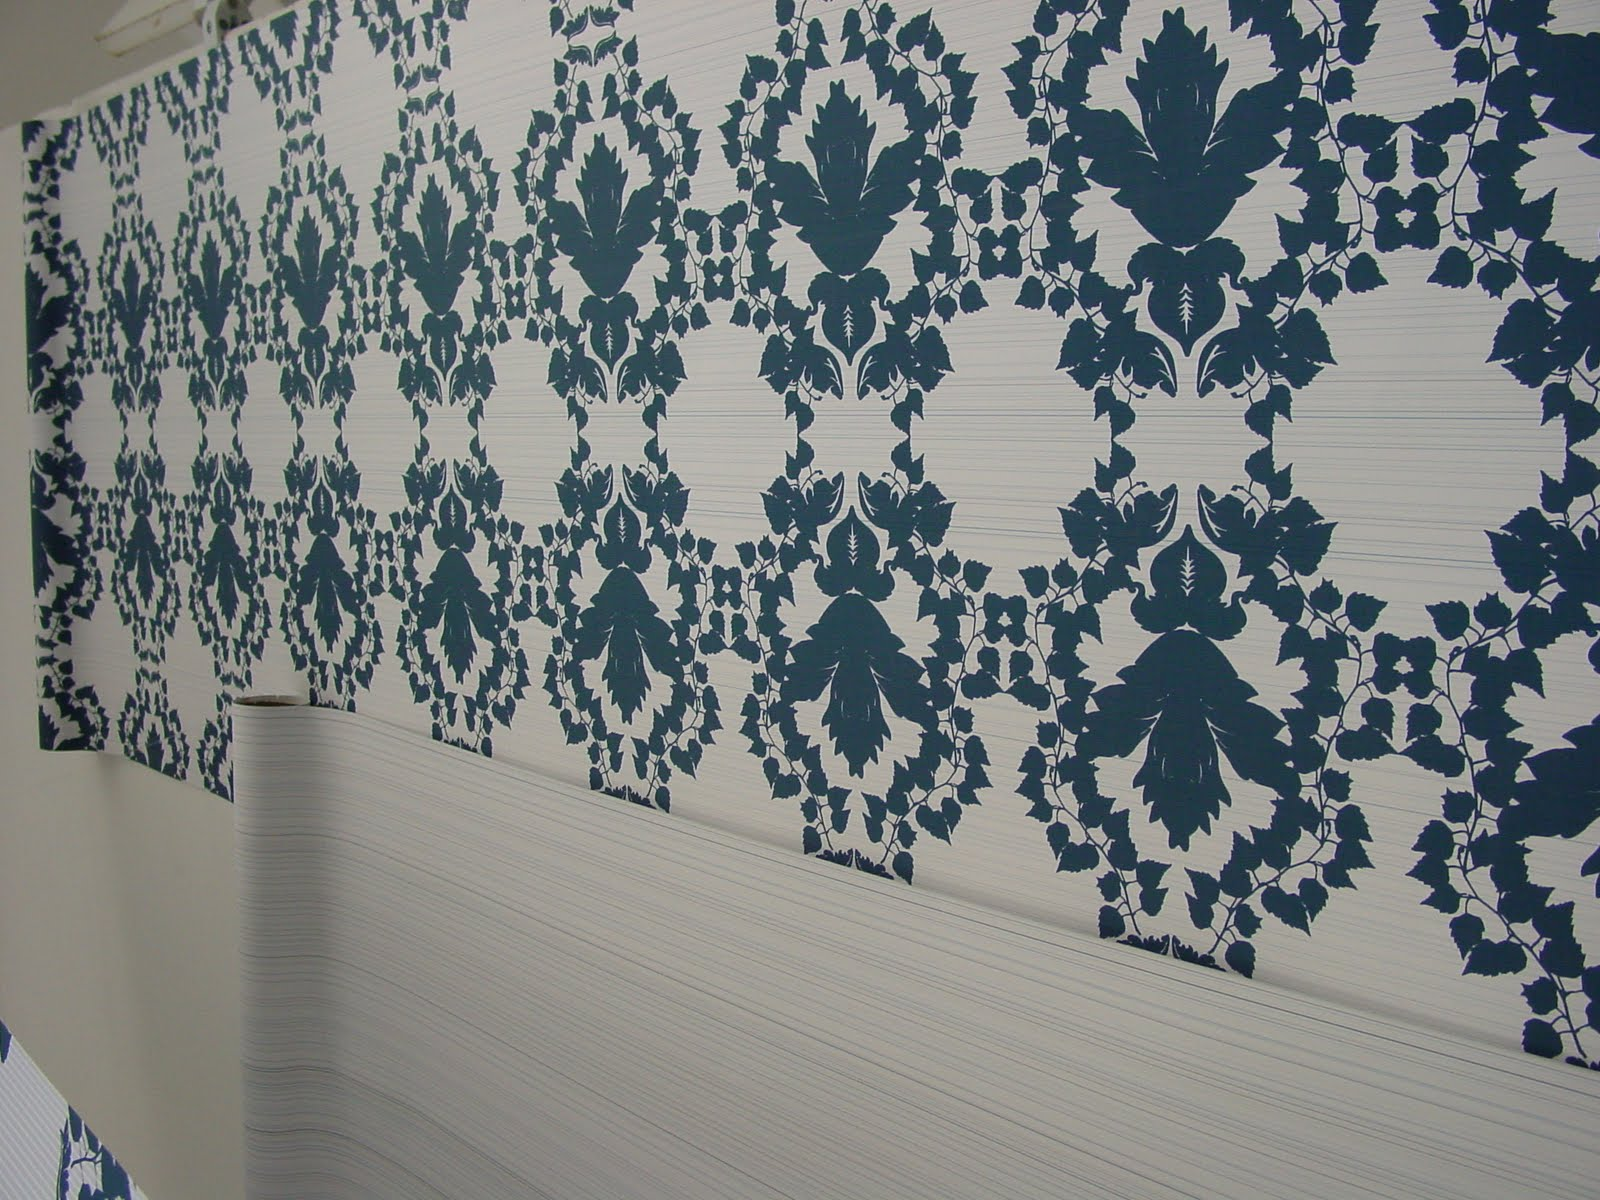 High end designer wallpaper companies such as Designers Guild and 1600x1200